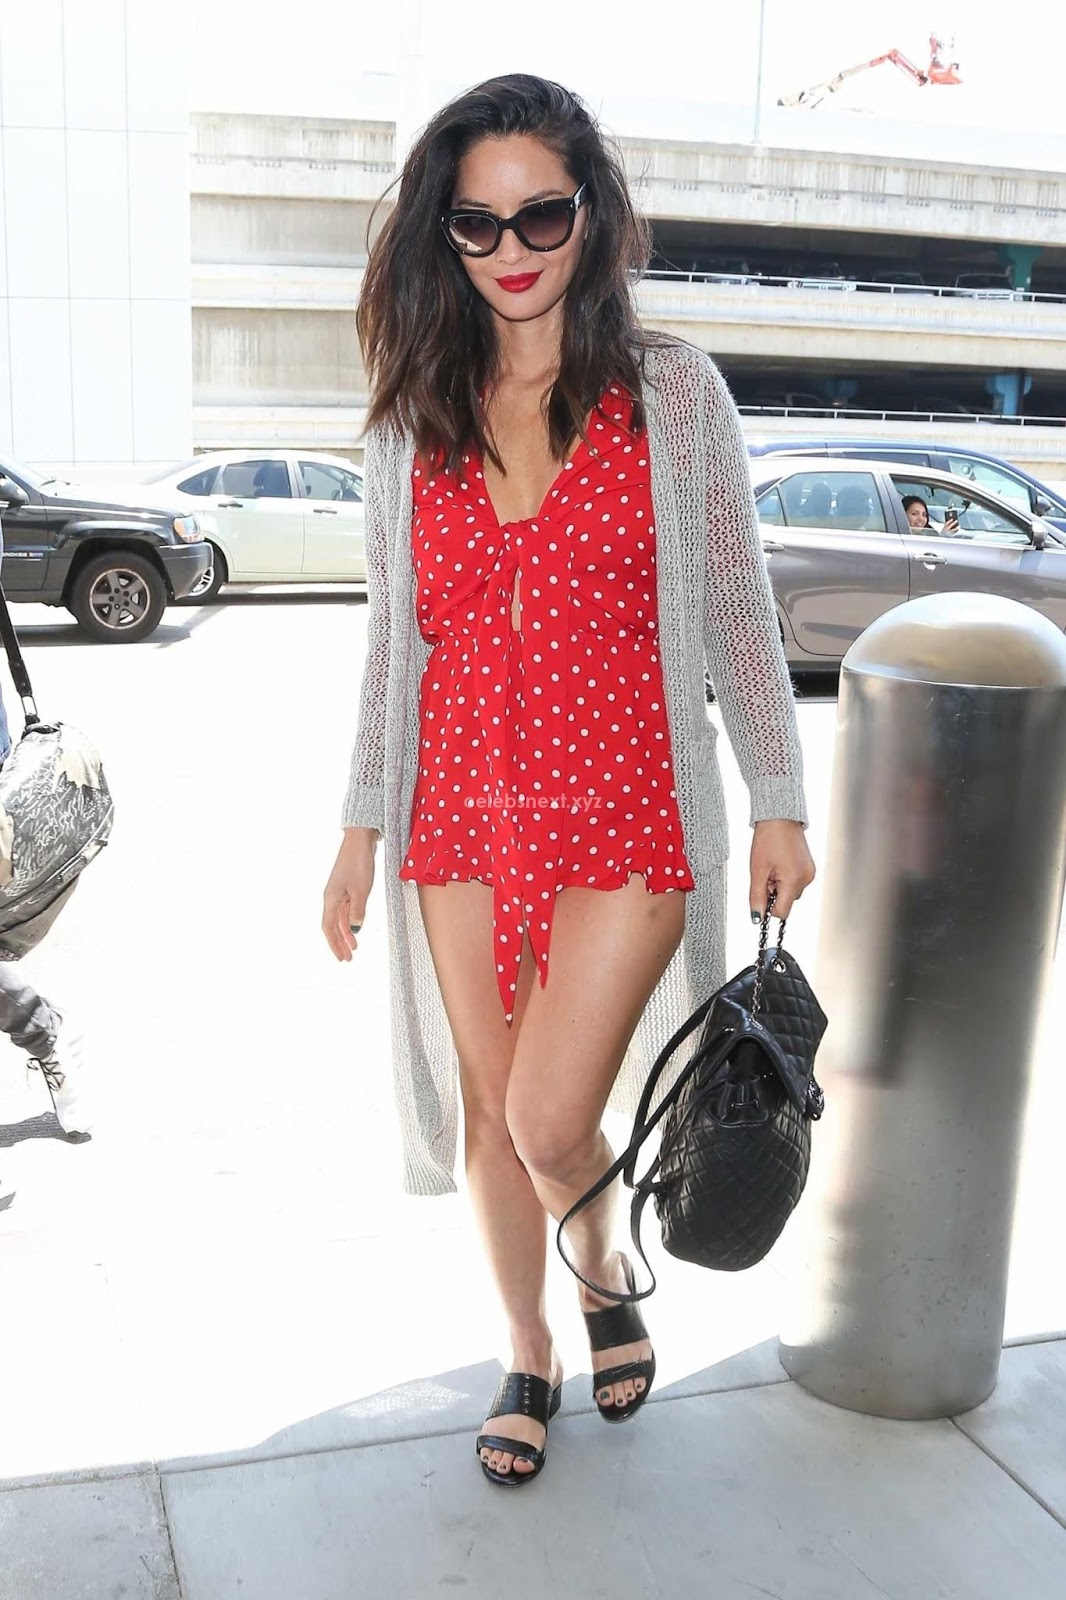 OLIVIA MUNN ALMOST NUDE LEGS IN RED SHORT DRESS WOW June 2018 ~ CelebsNext.xyz Exclusive Celebrity Pics